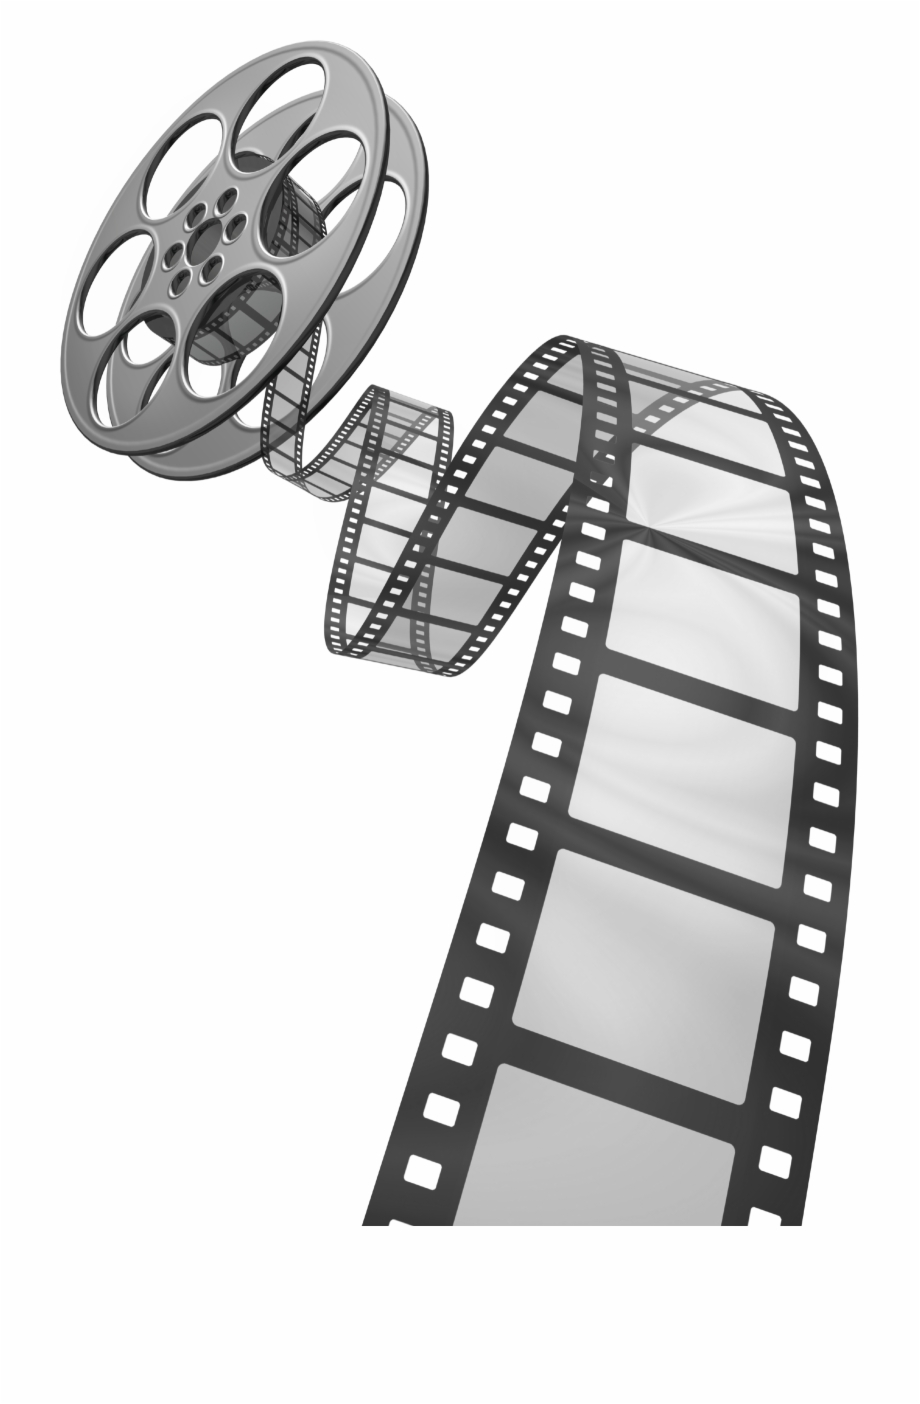 Movie Reel Film Reel Clip Art Image Movie Film With Transparent Background Transparent Png Download 232997 Vippng